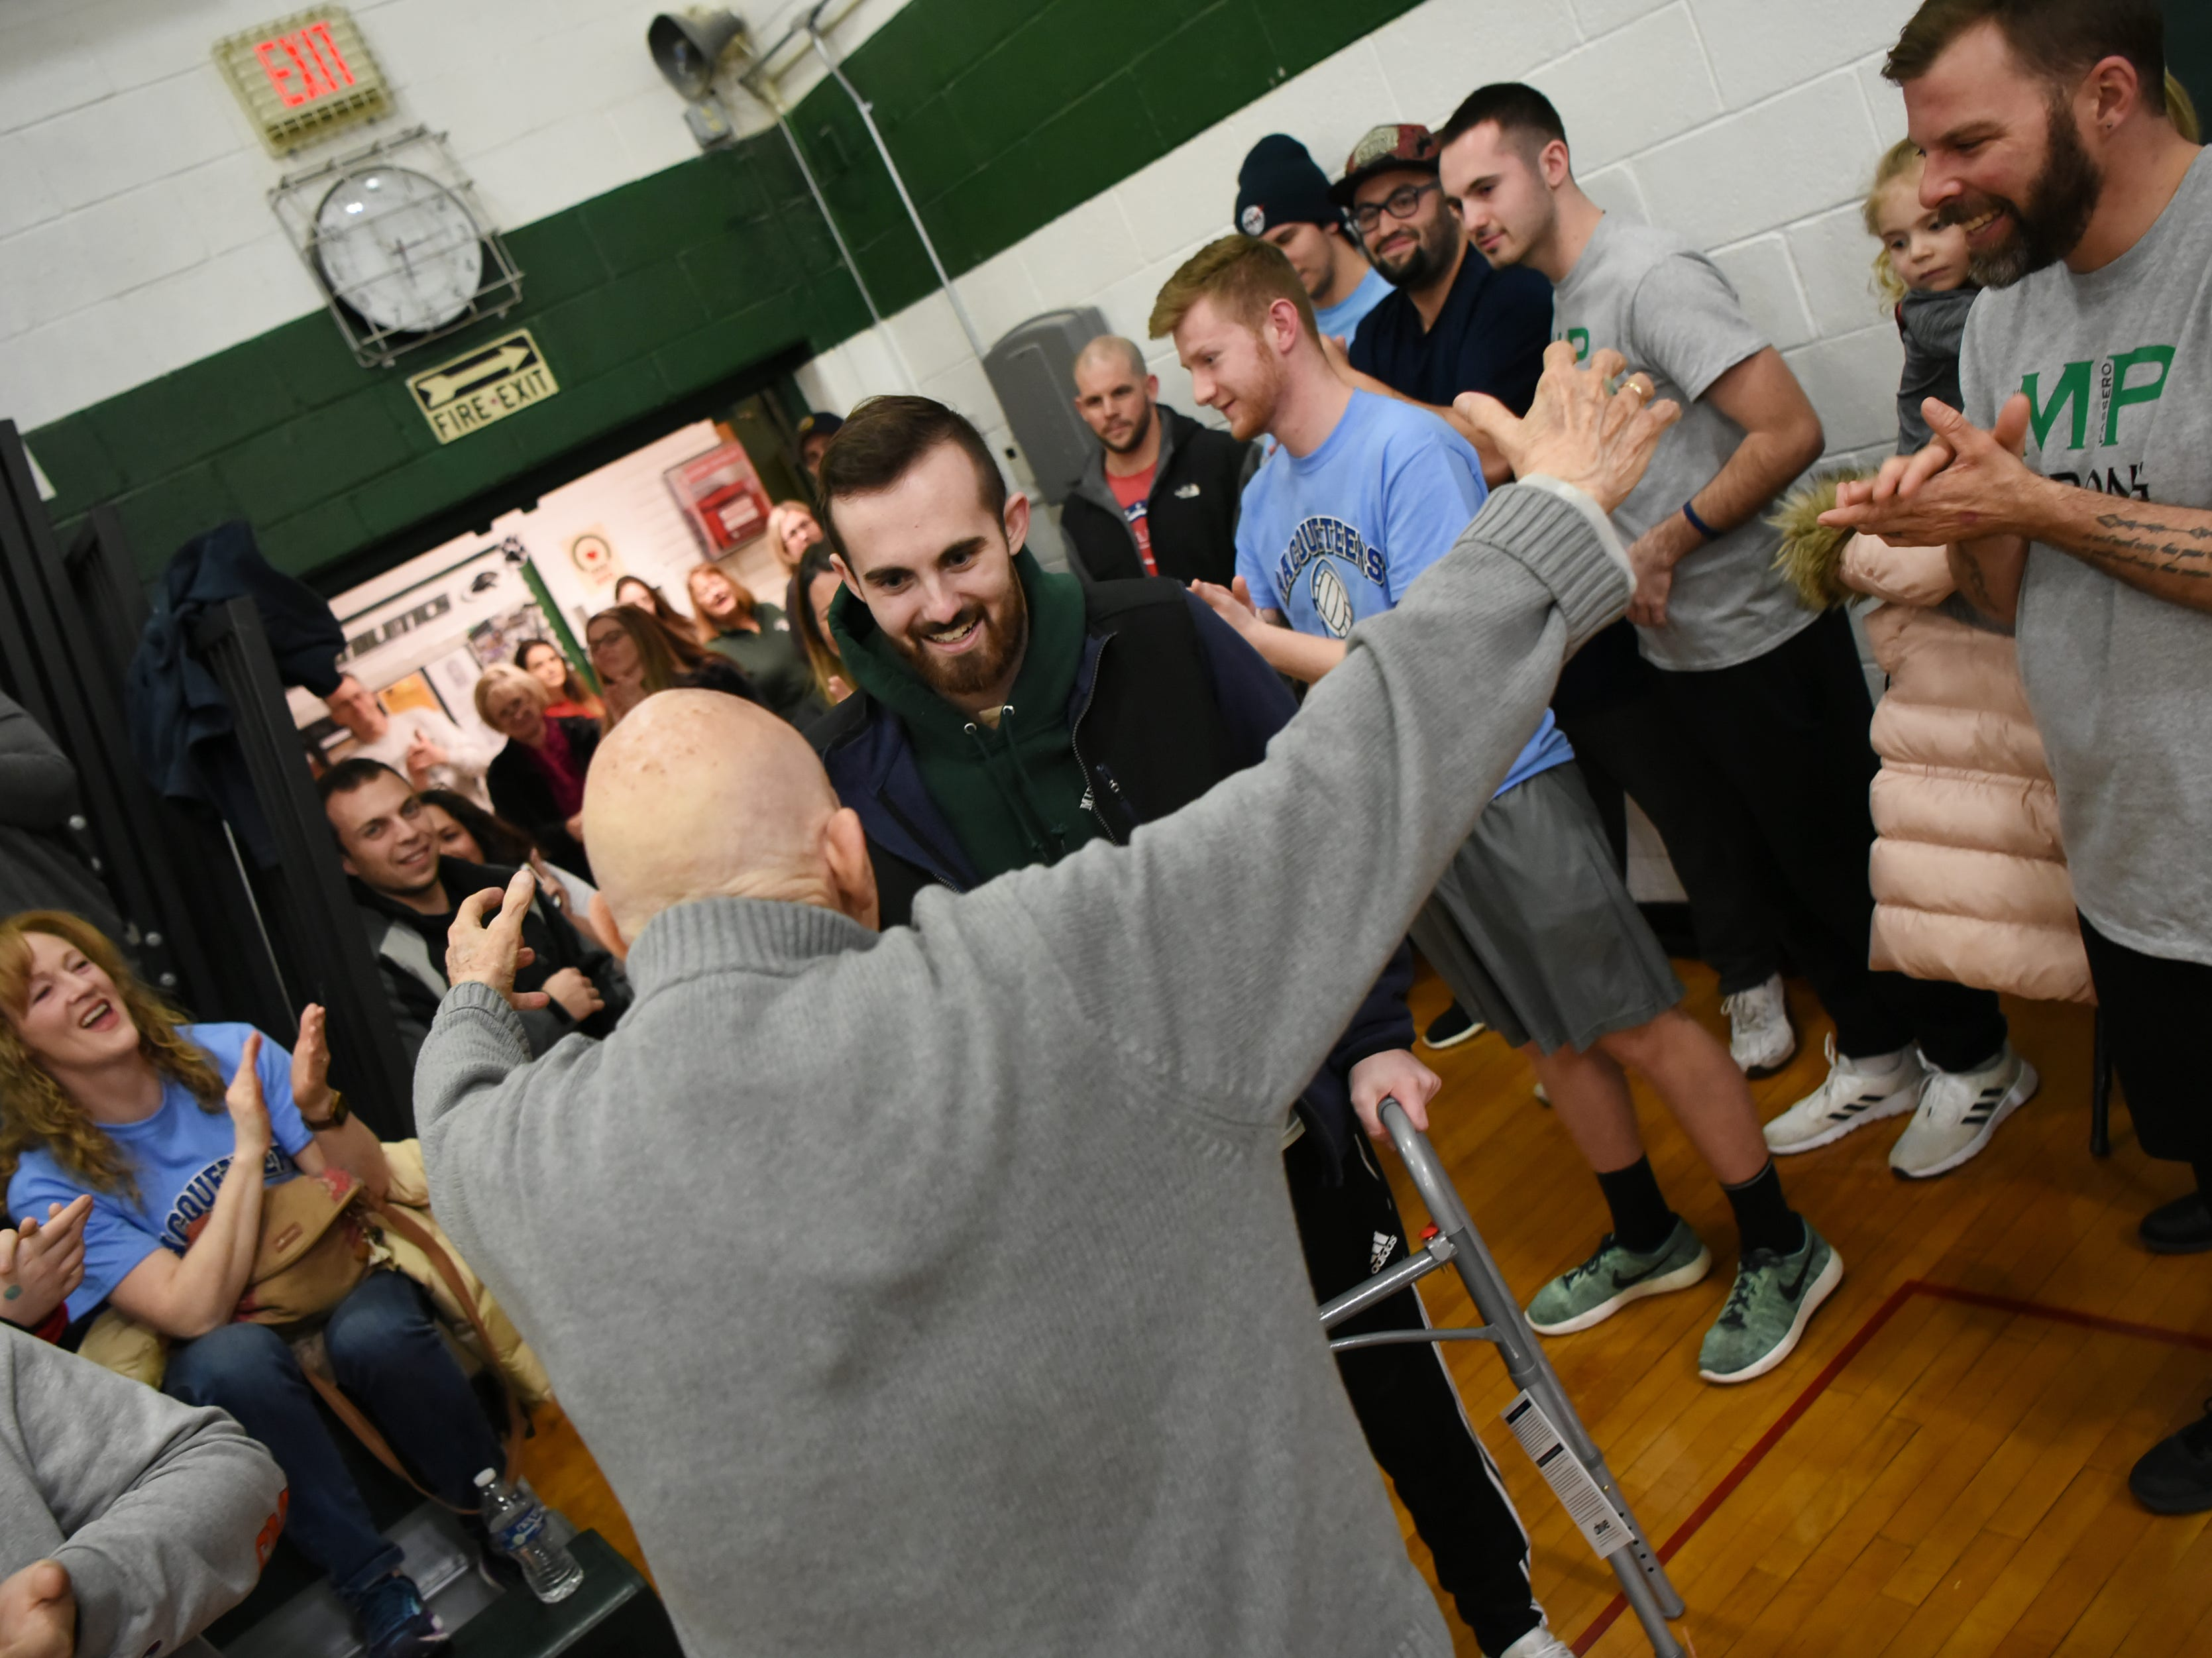 A fundraising Volleyball Tournament is held at Midland Park High School in Midland Park on Saturday February 9, 2019. The event is to raise money for the families of two young people seriously injured in an auto accident in December. Ryan Moore, who was injured in the accident, is greeted by his Grandfather, Donald Rick as he arrives at the gym.